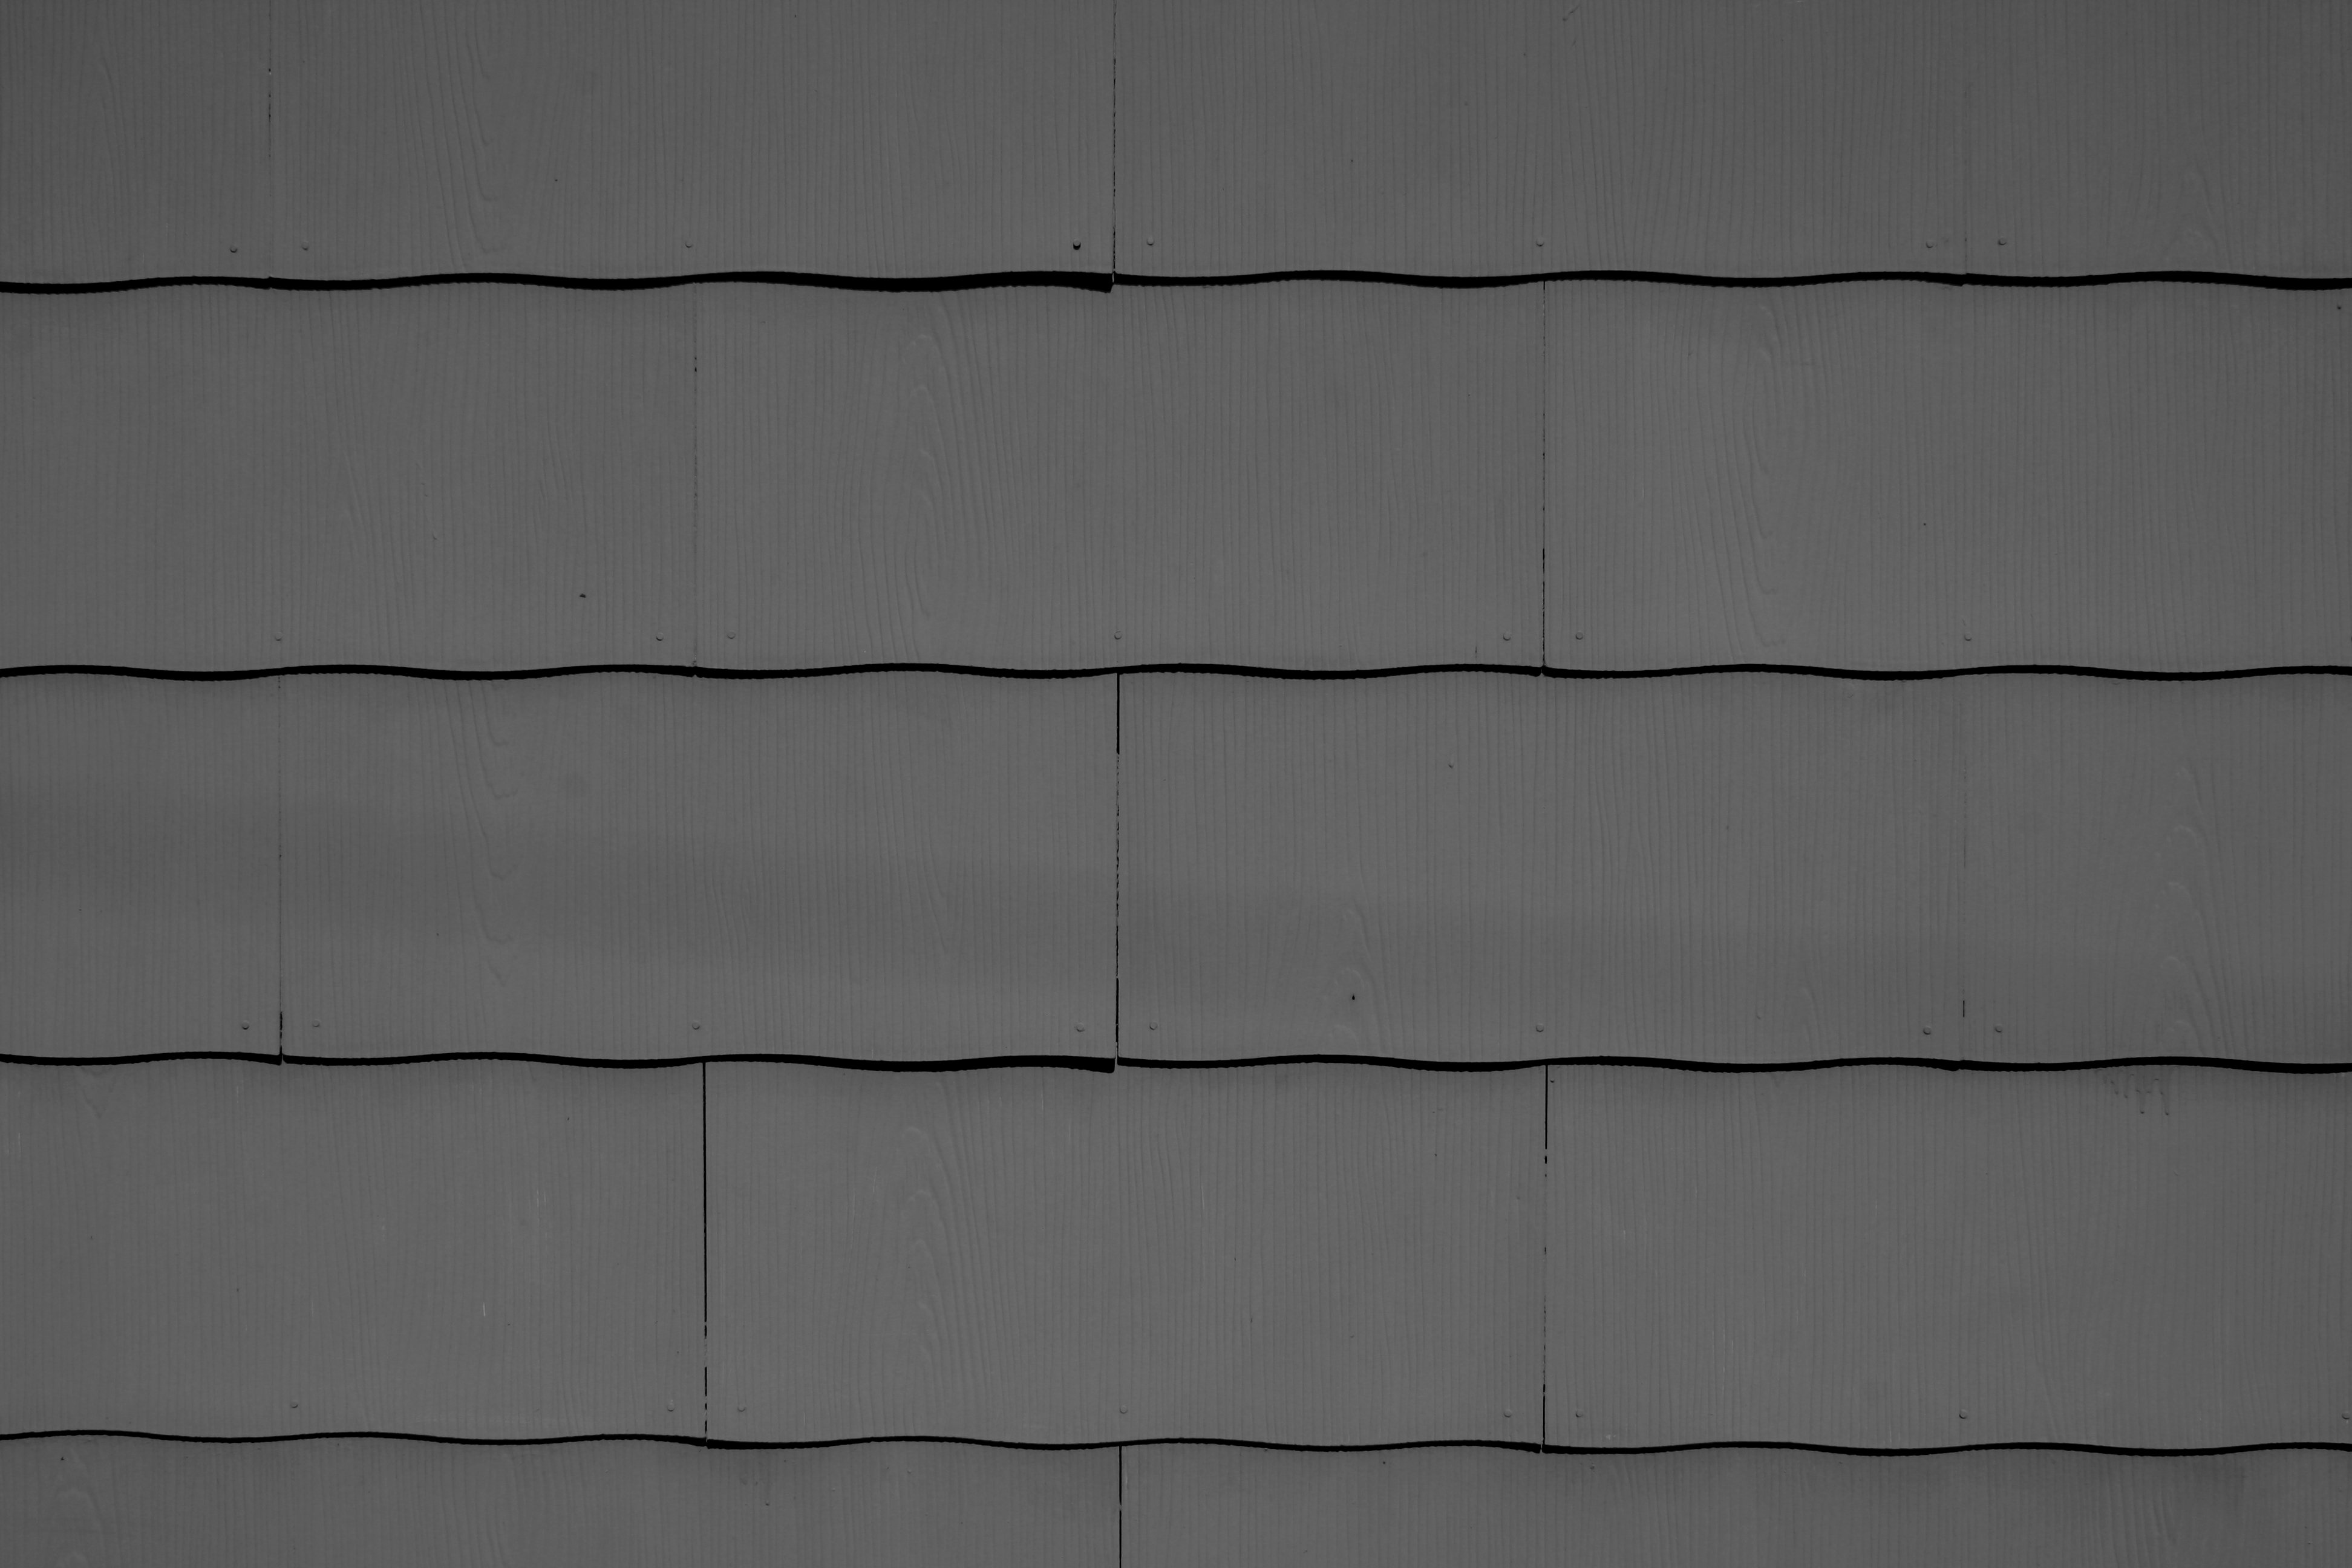 Charcoal Gray Scalloped Asbestos Siding Shingles Texture